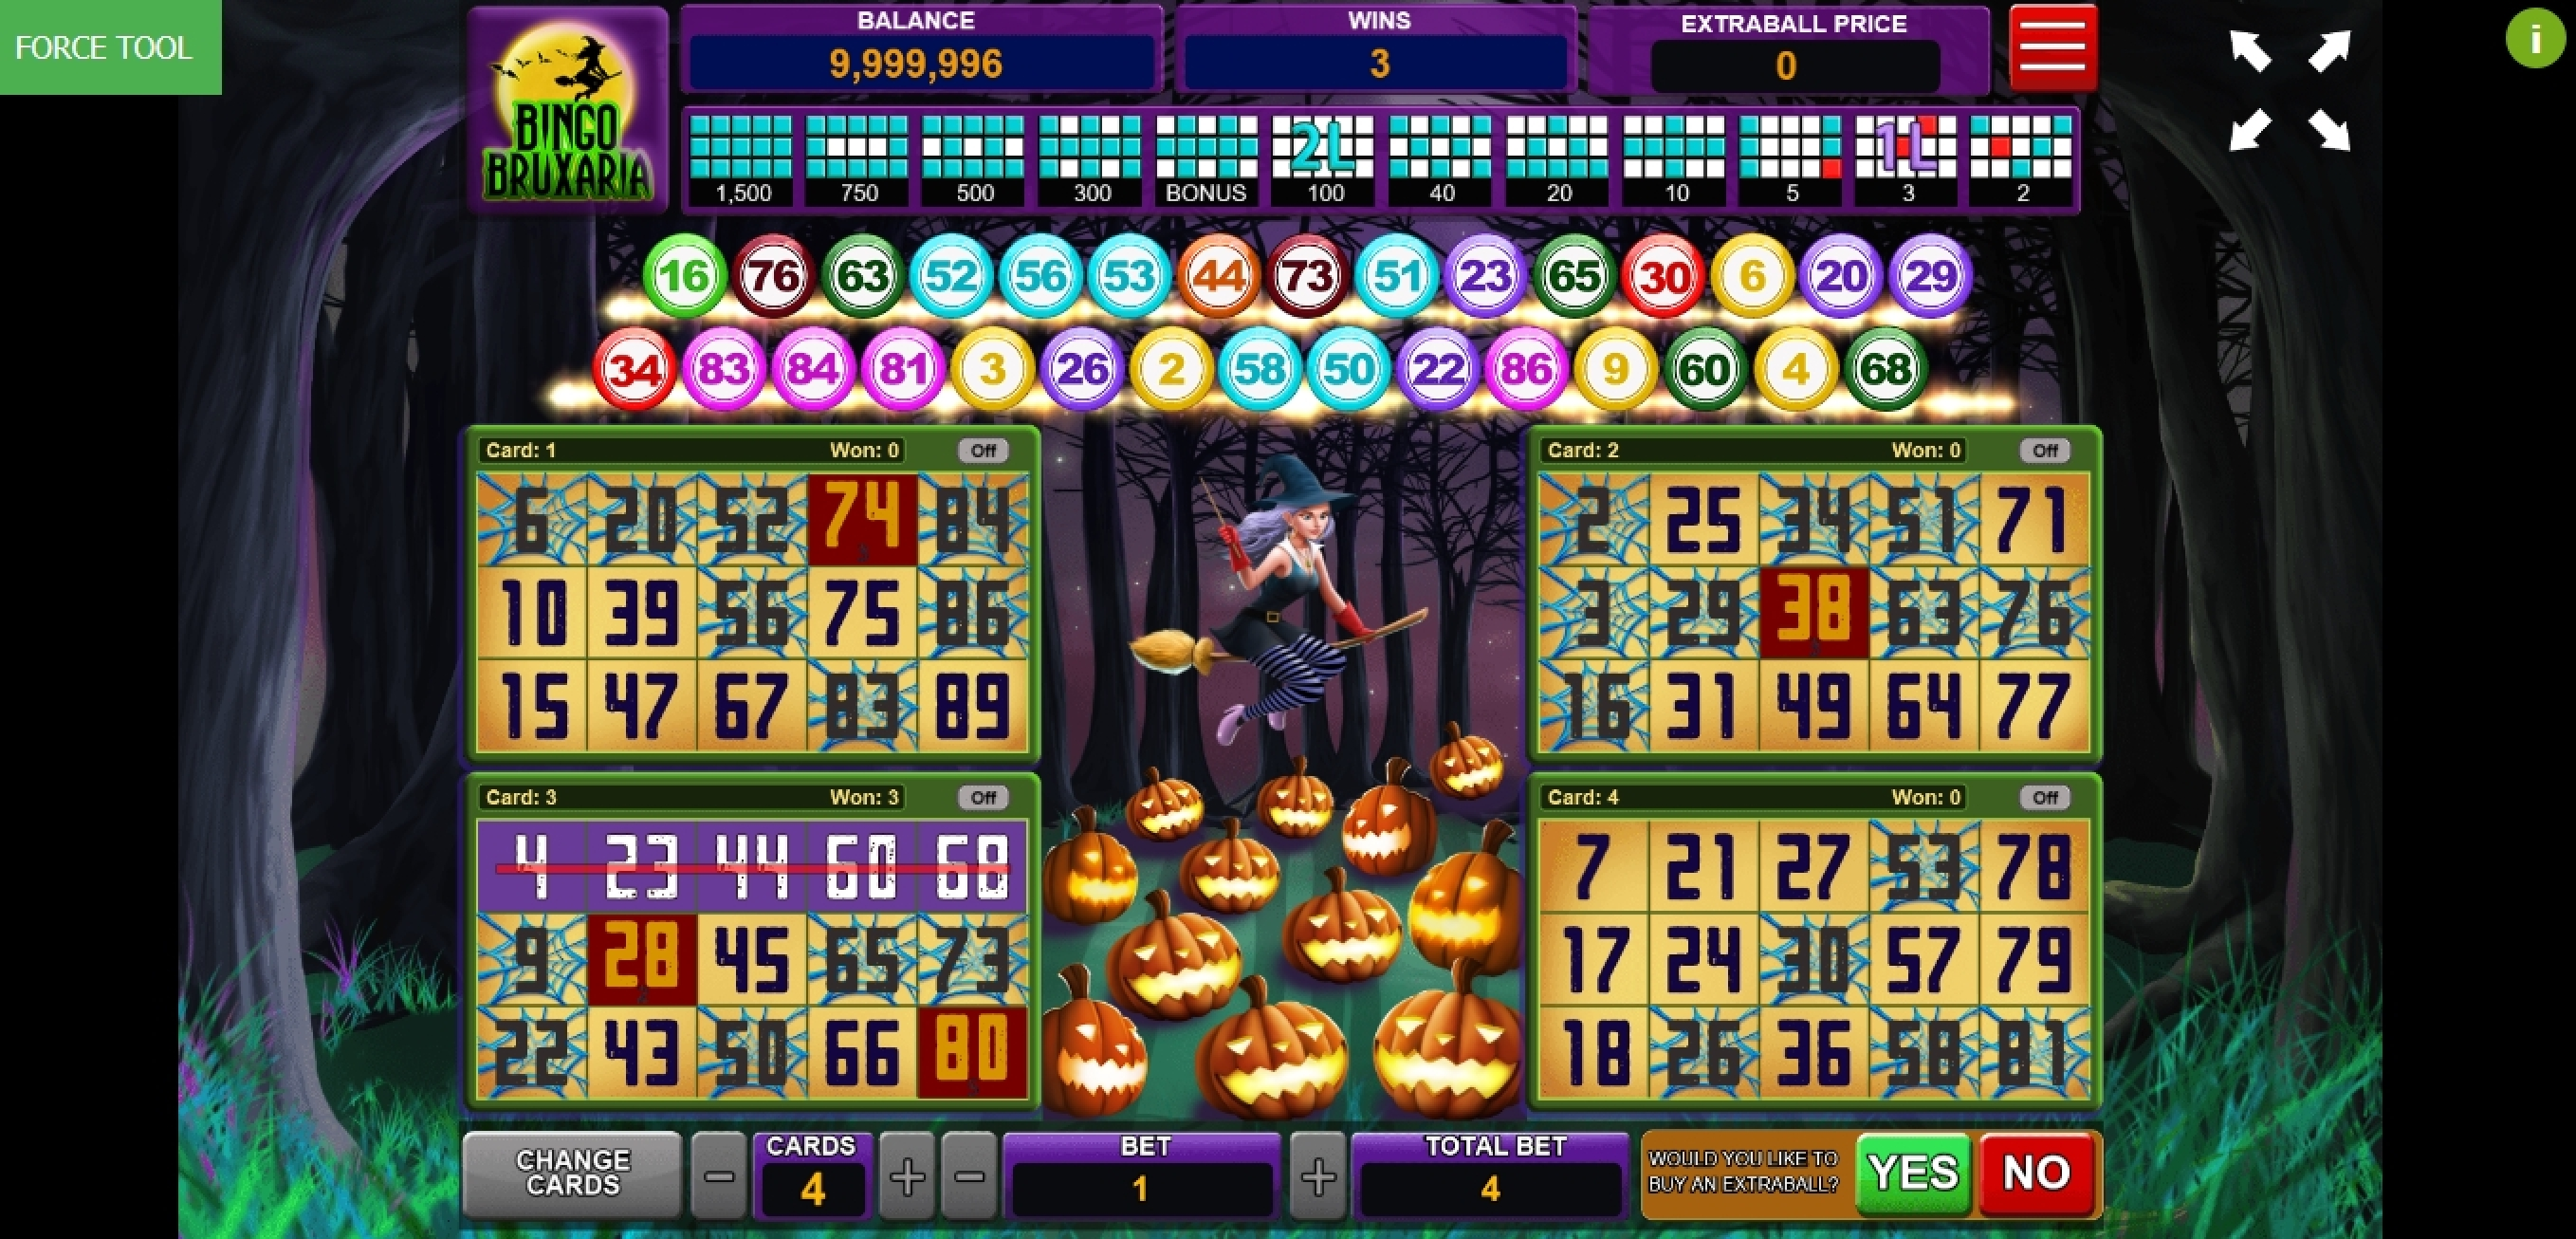 Win Money in Bingo Bruxaria Free Slot Game by Caleta Gaming